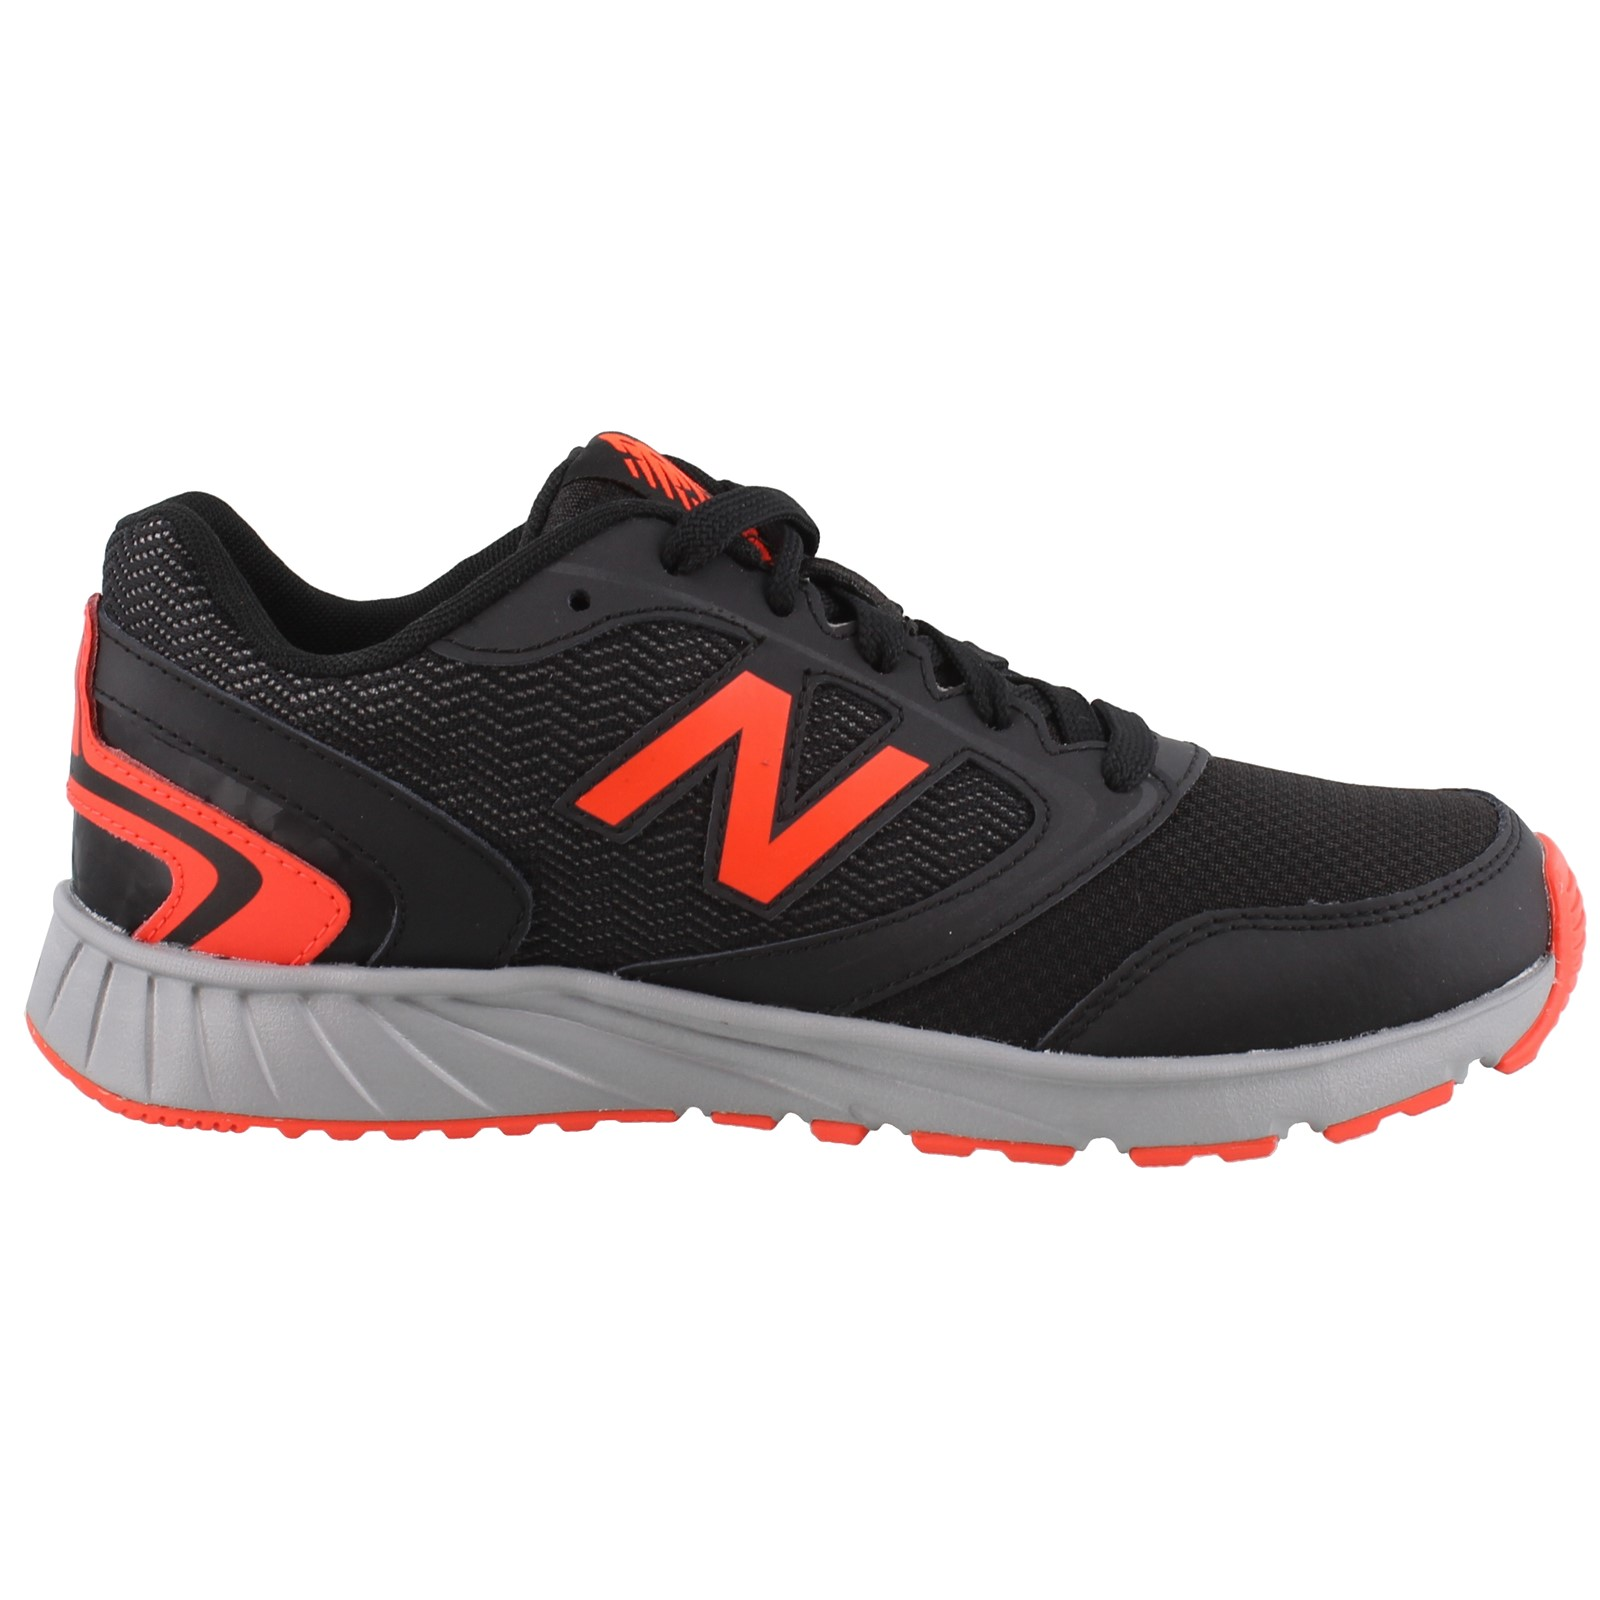 Kid's NEW BALANCE, 455 LACE UP SNEAKERS